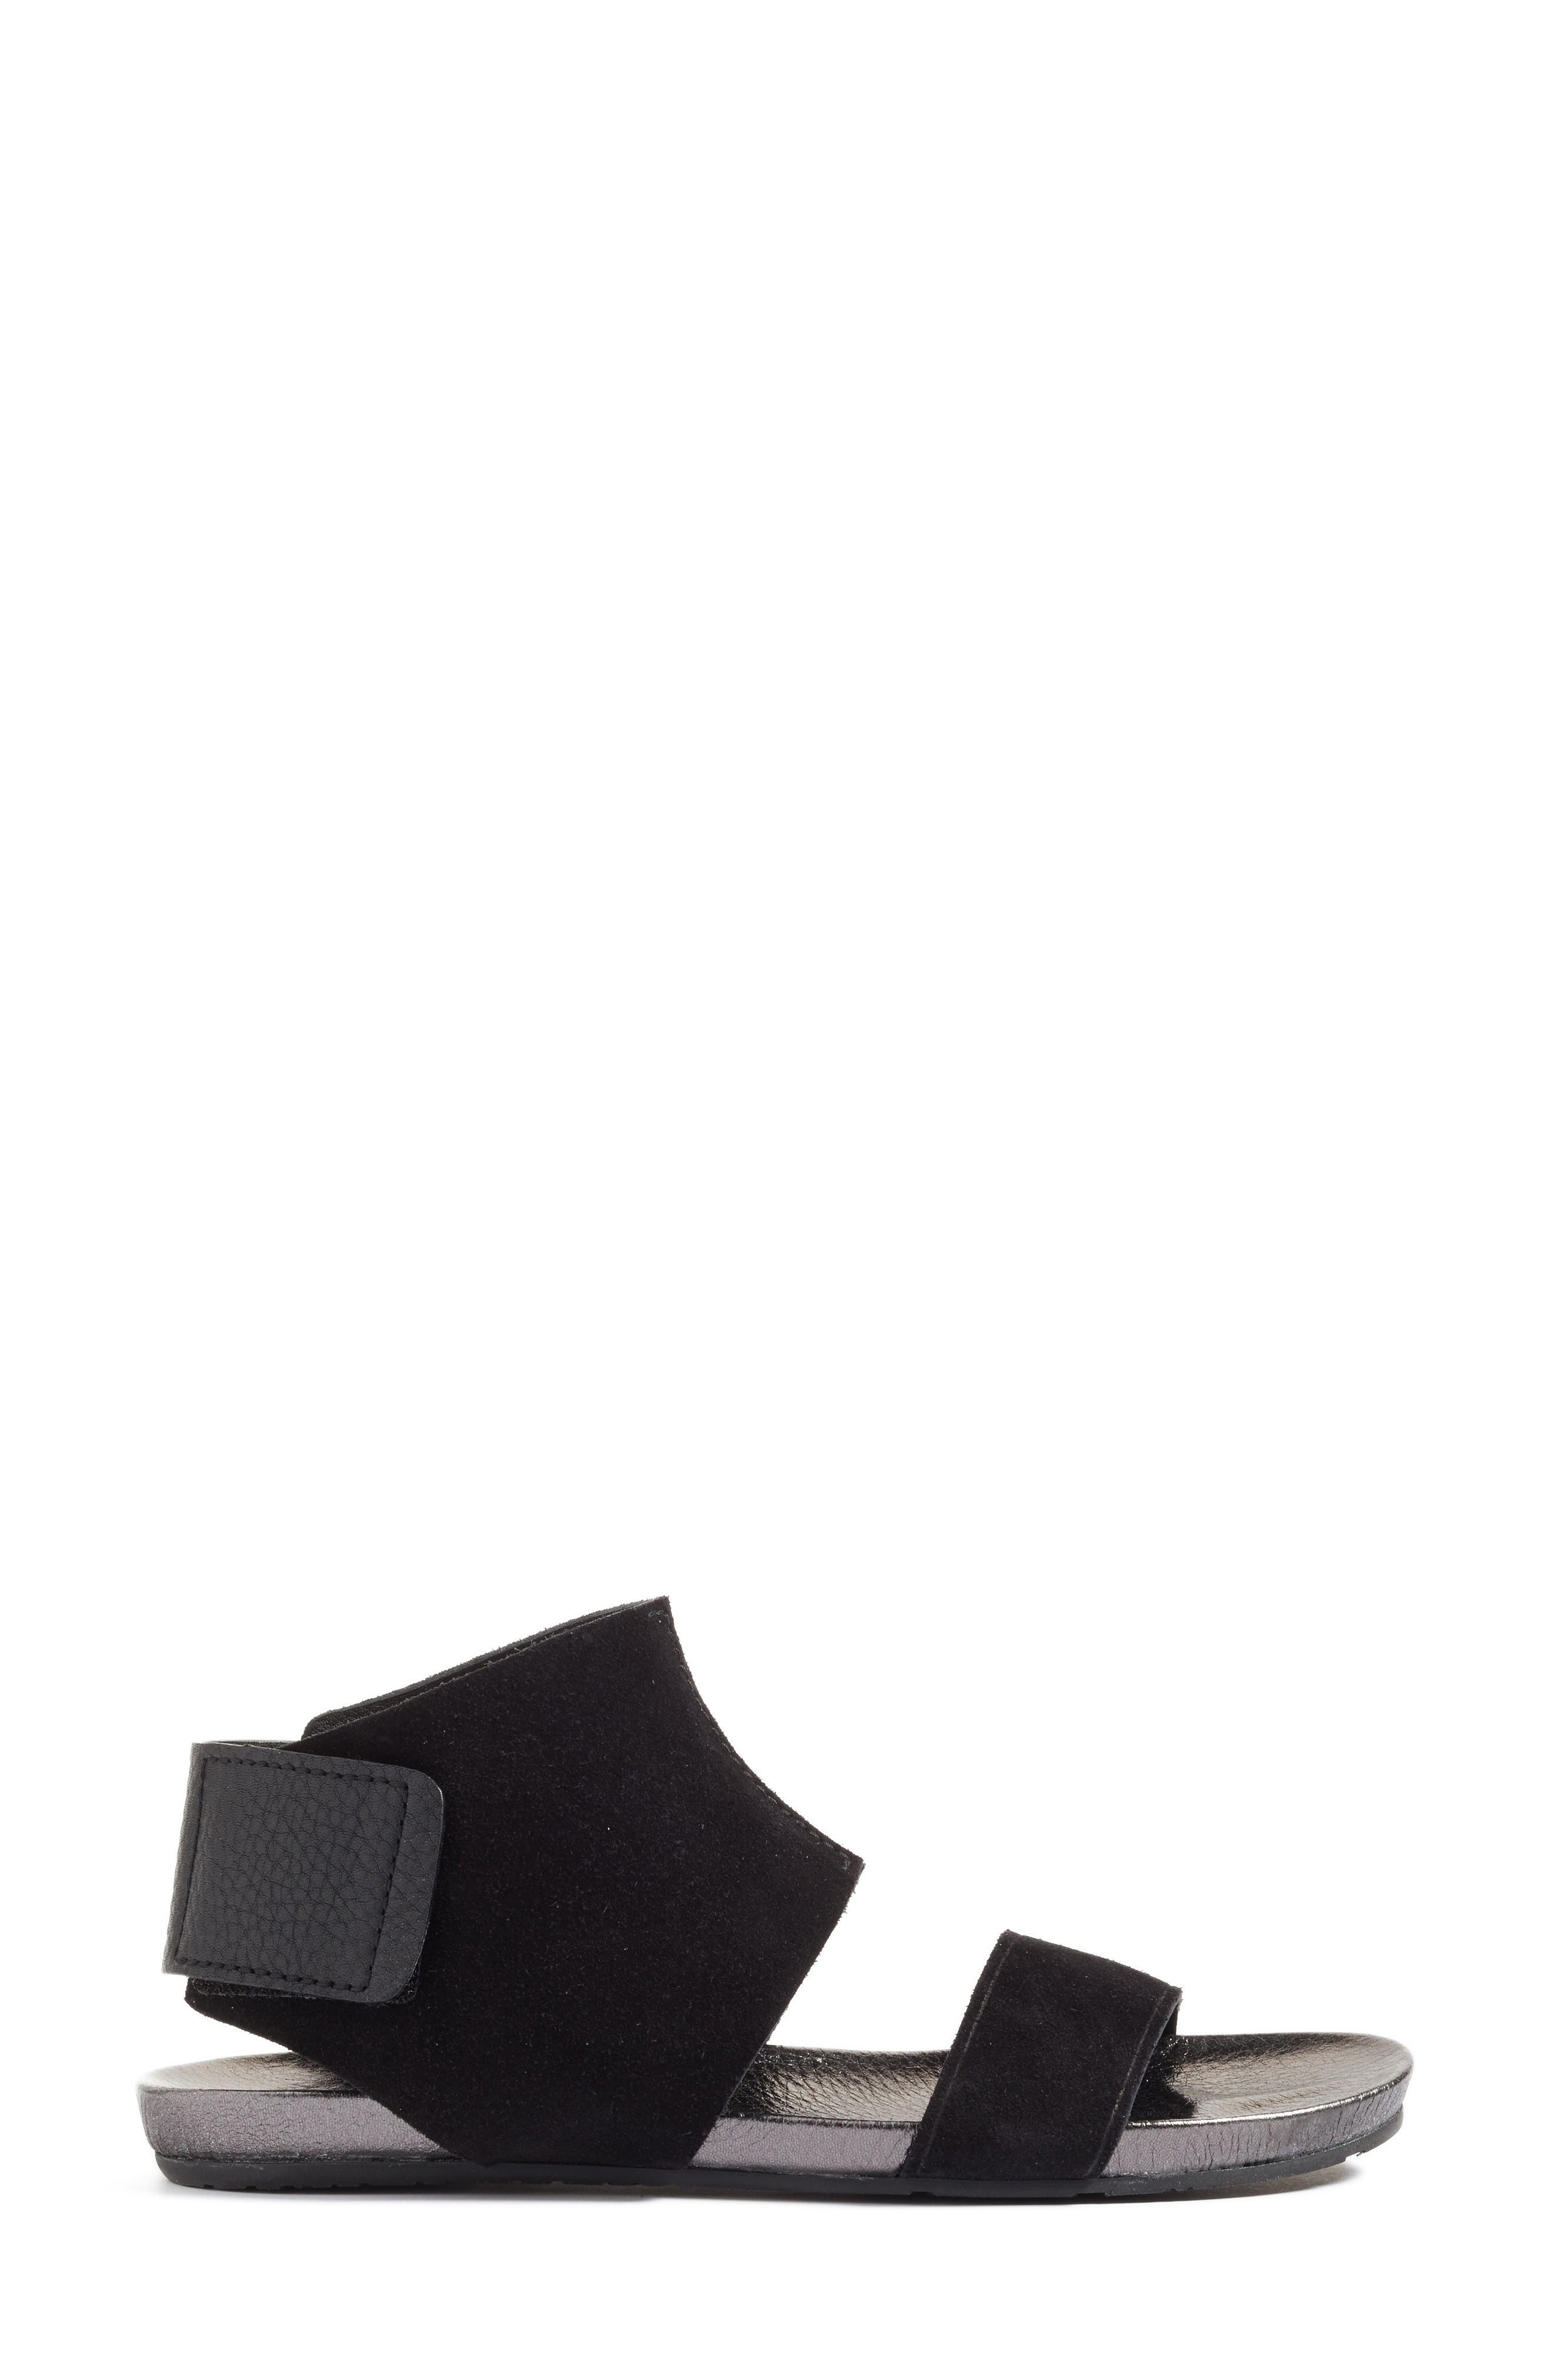 Ankle Cuff Sandal,                             Alternate thumbnail 3, color,                             Black Leather